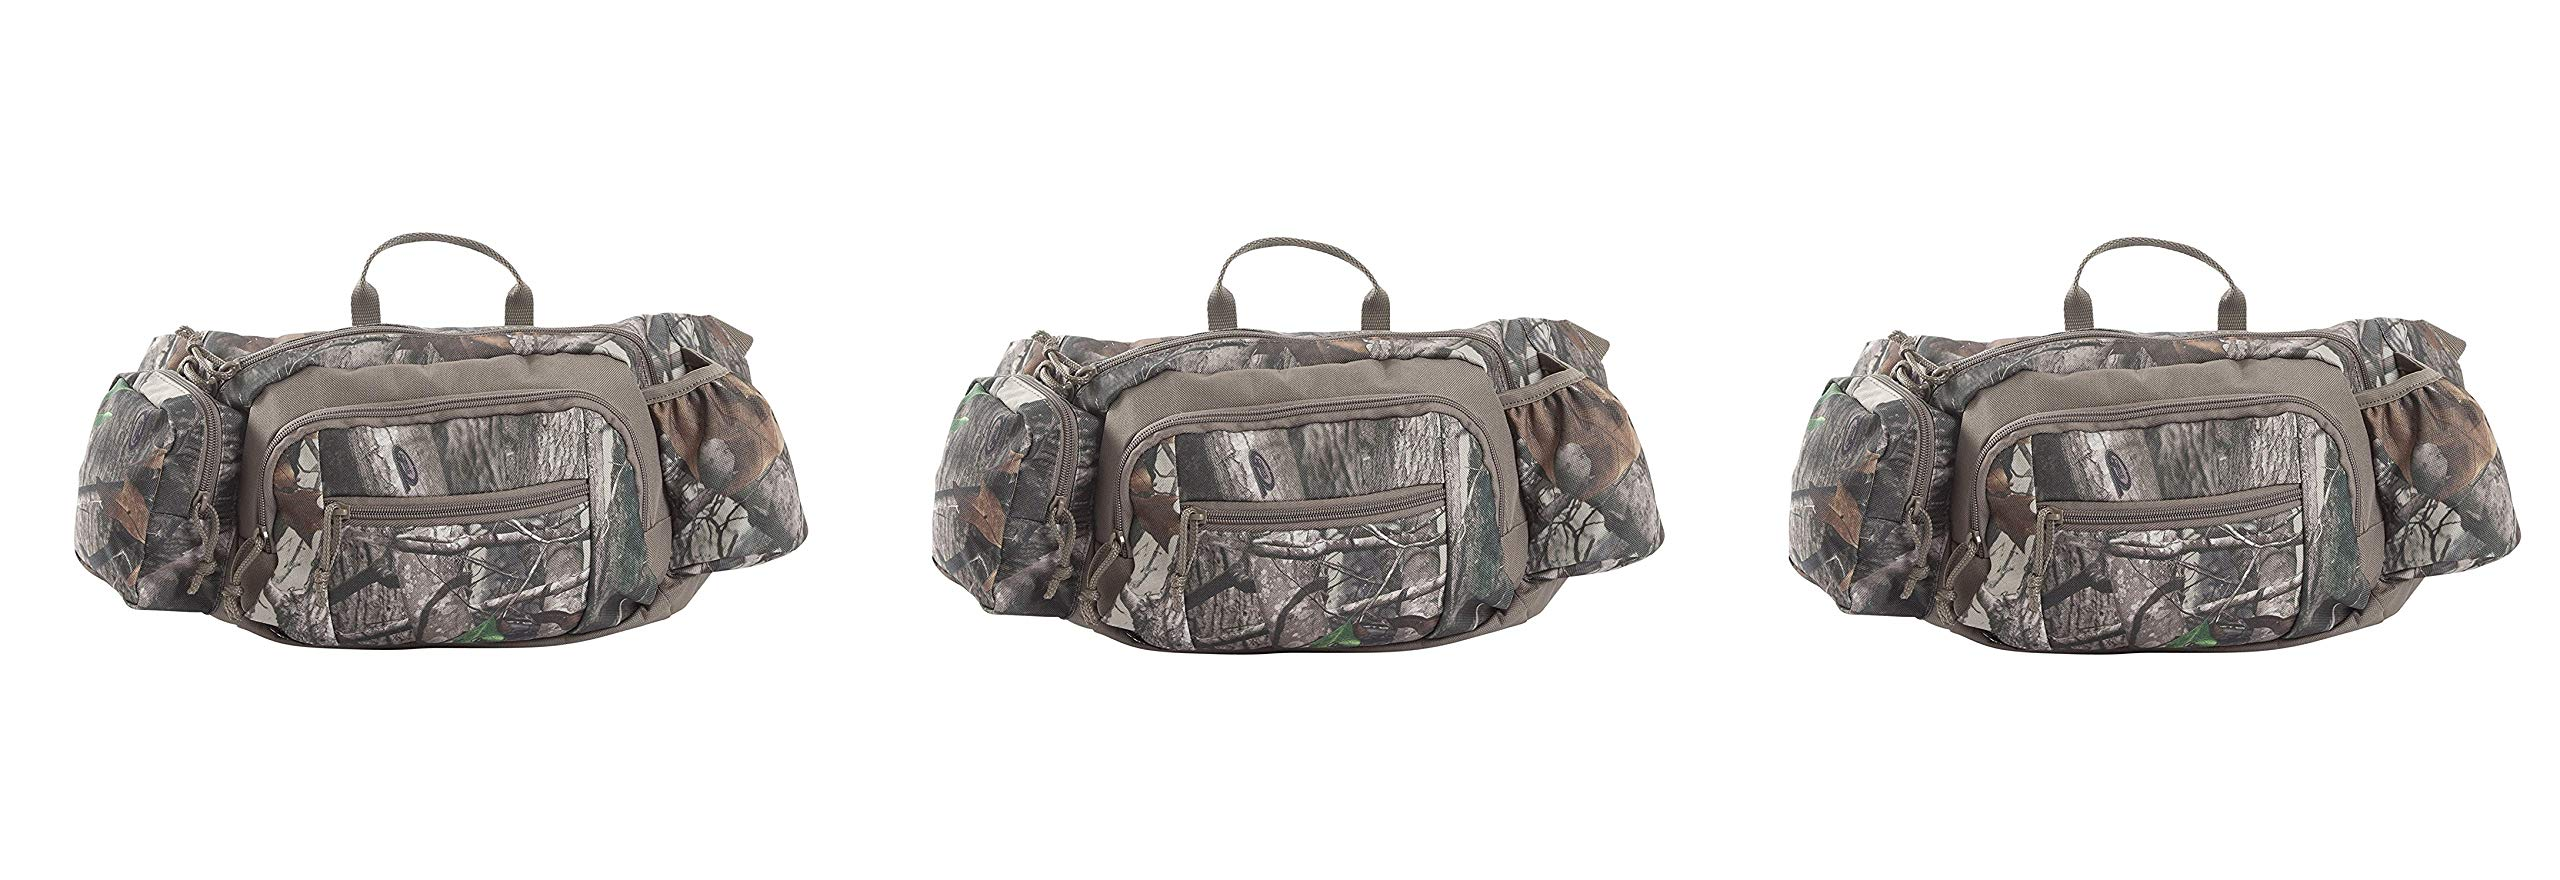 Allen Crusade Camo Hunting Waist Pack, 600 Cubic Inches, Next G2 (Pack of 3)